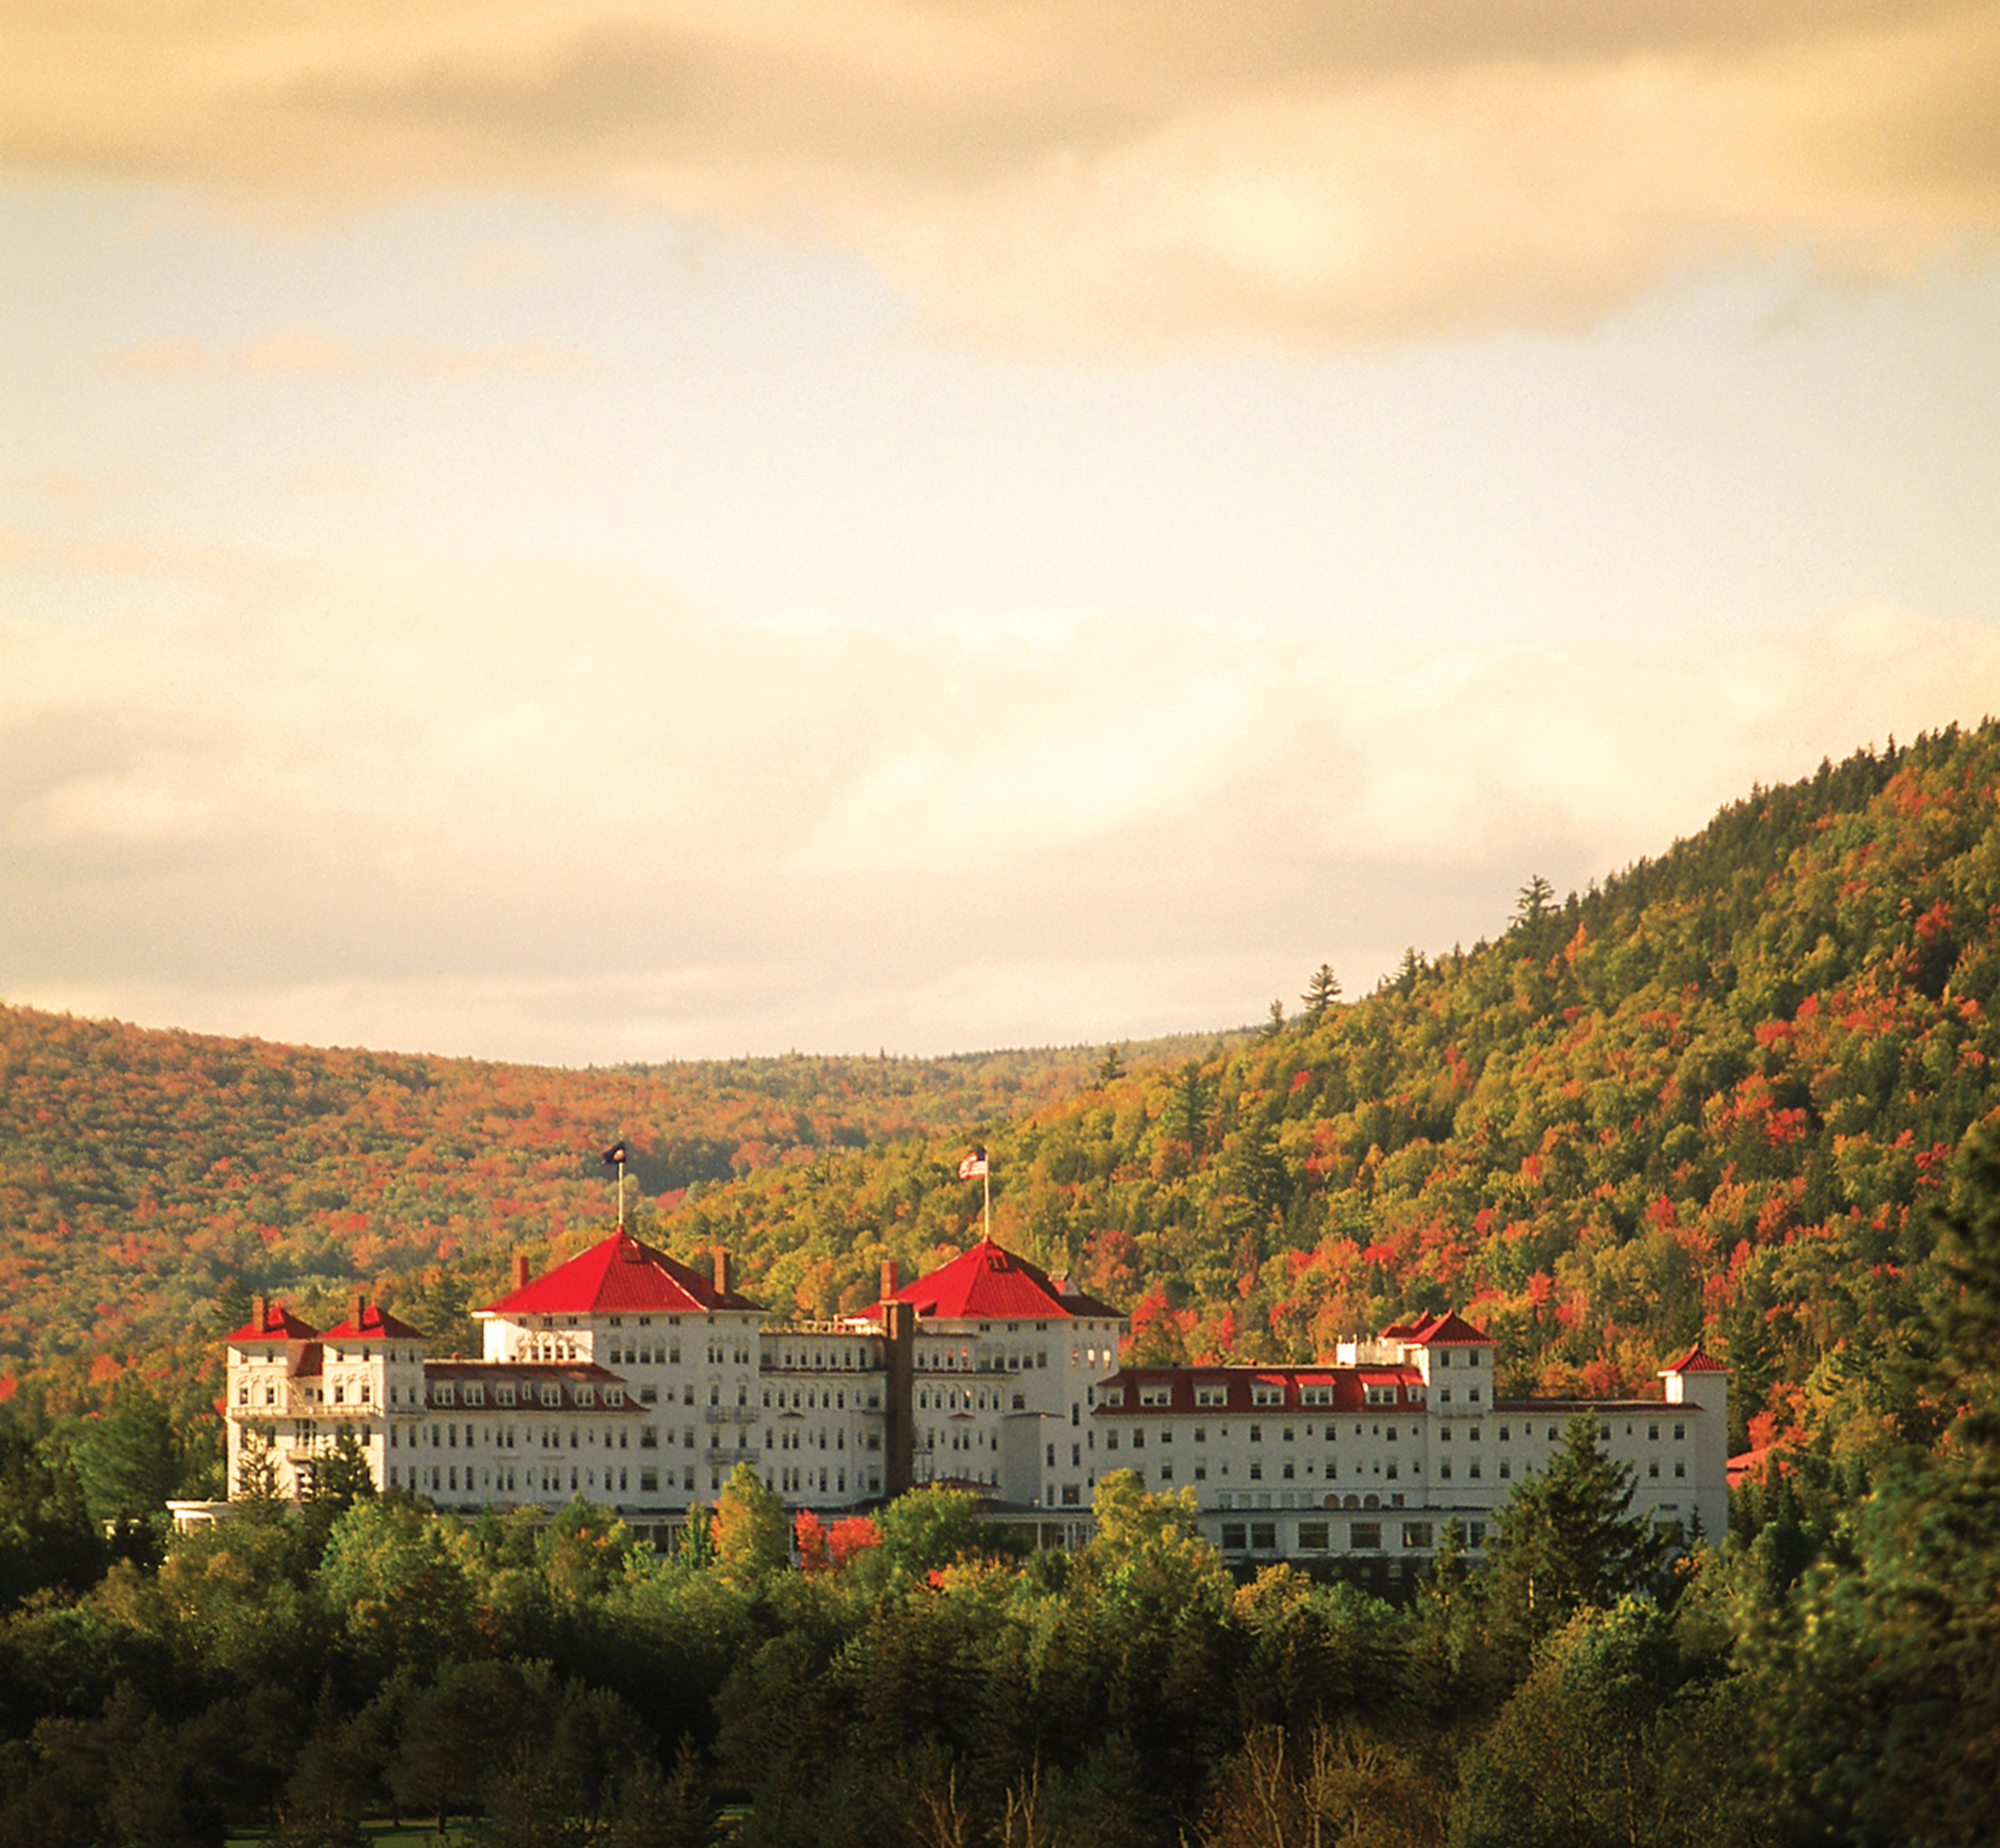 Fall foliage at Mount Washington resort in Bretton Woods, N.H.